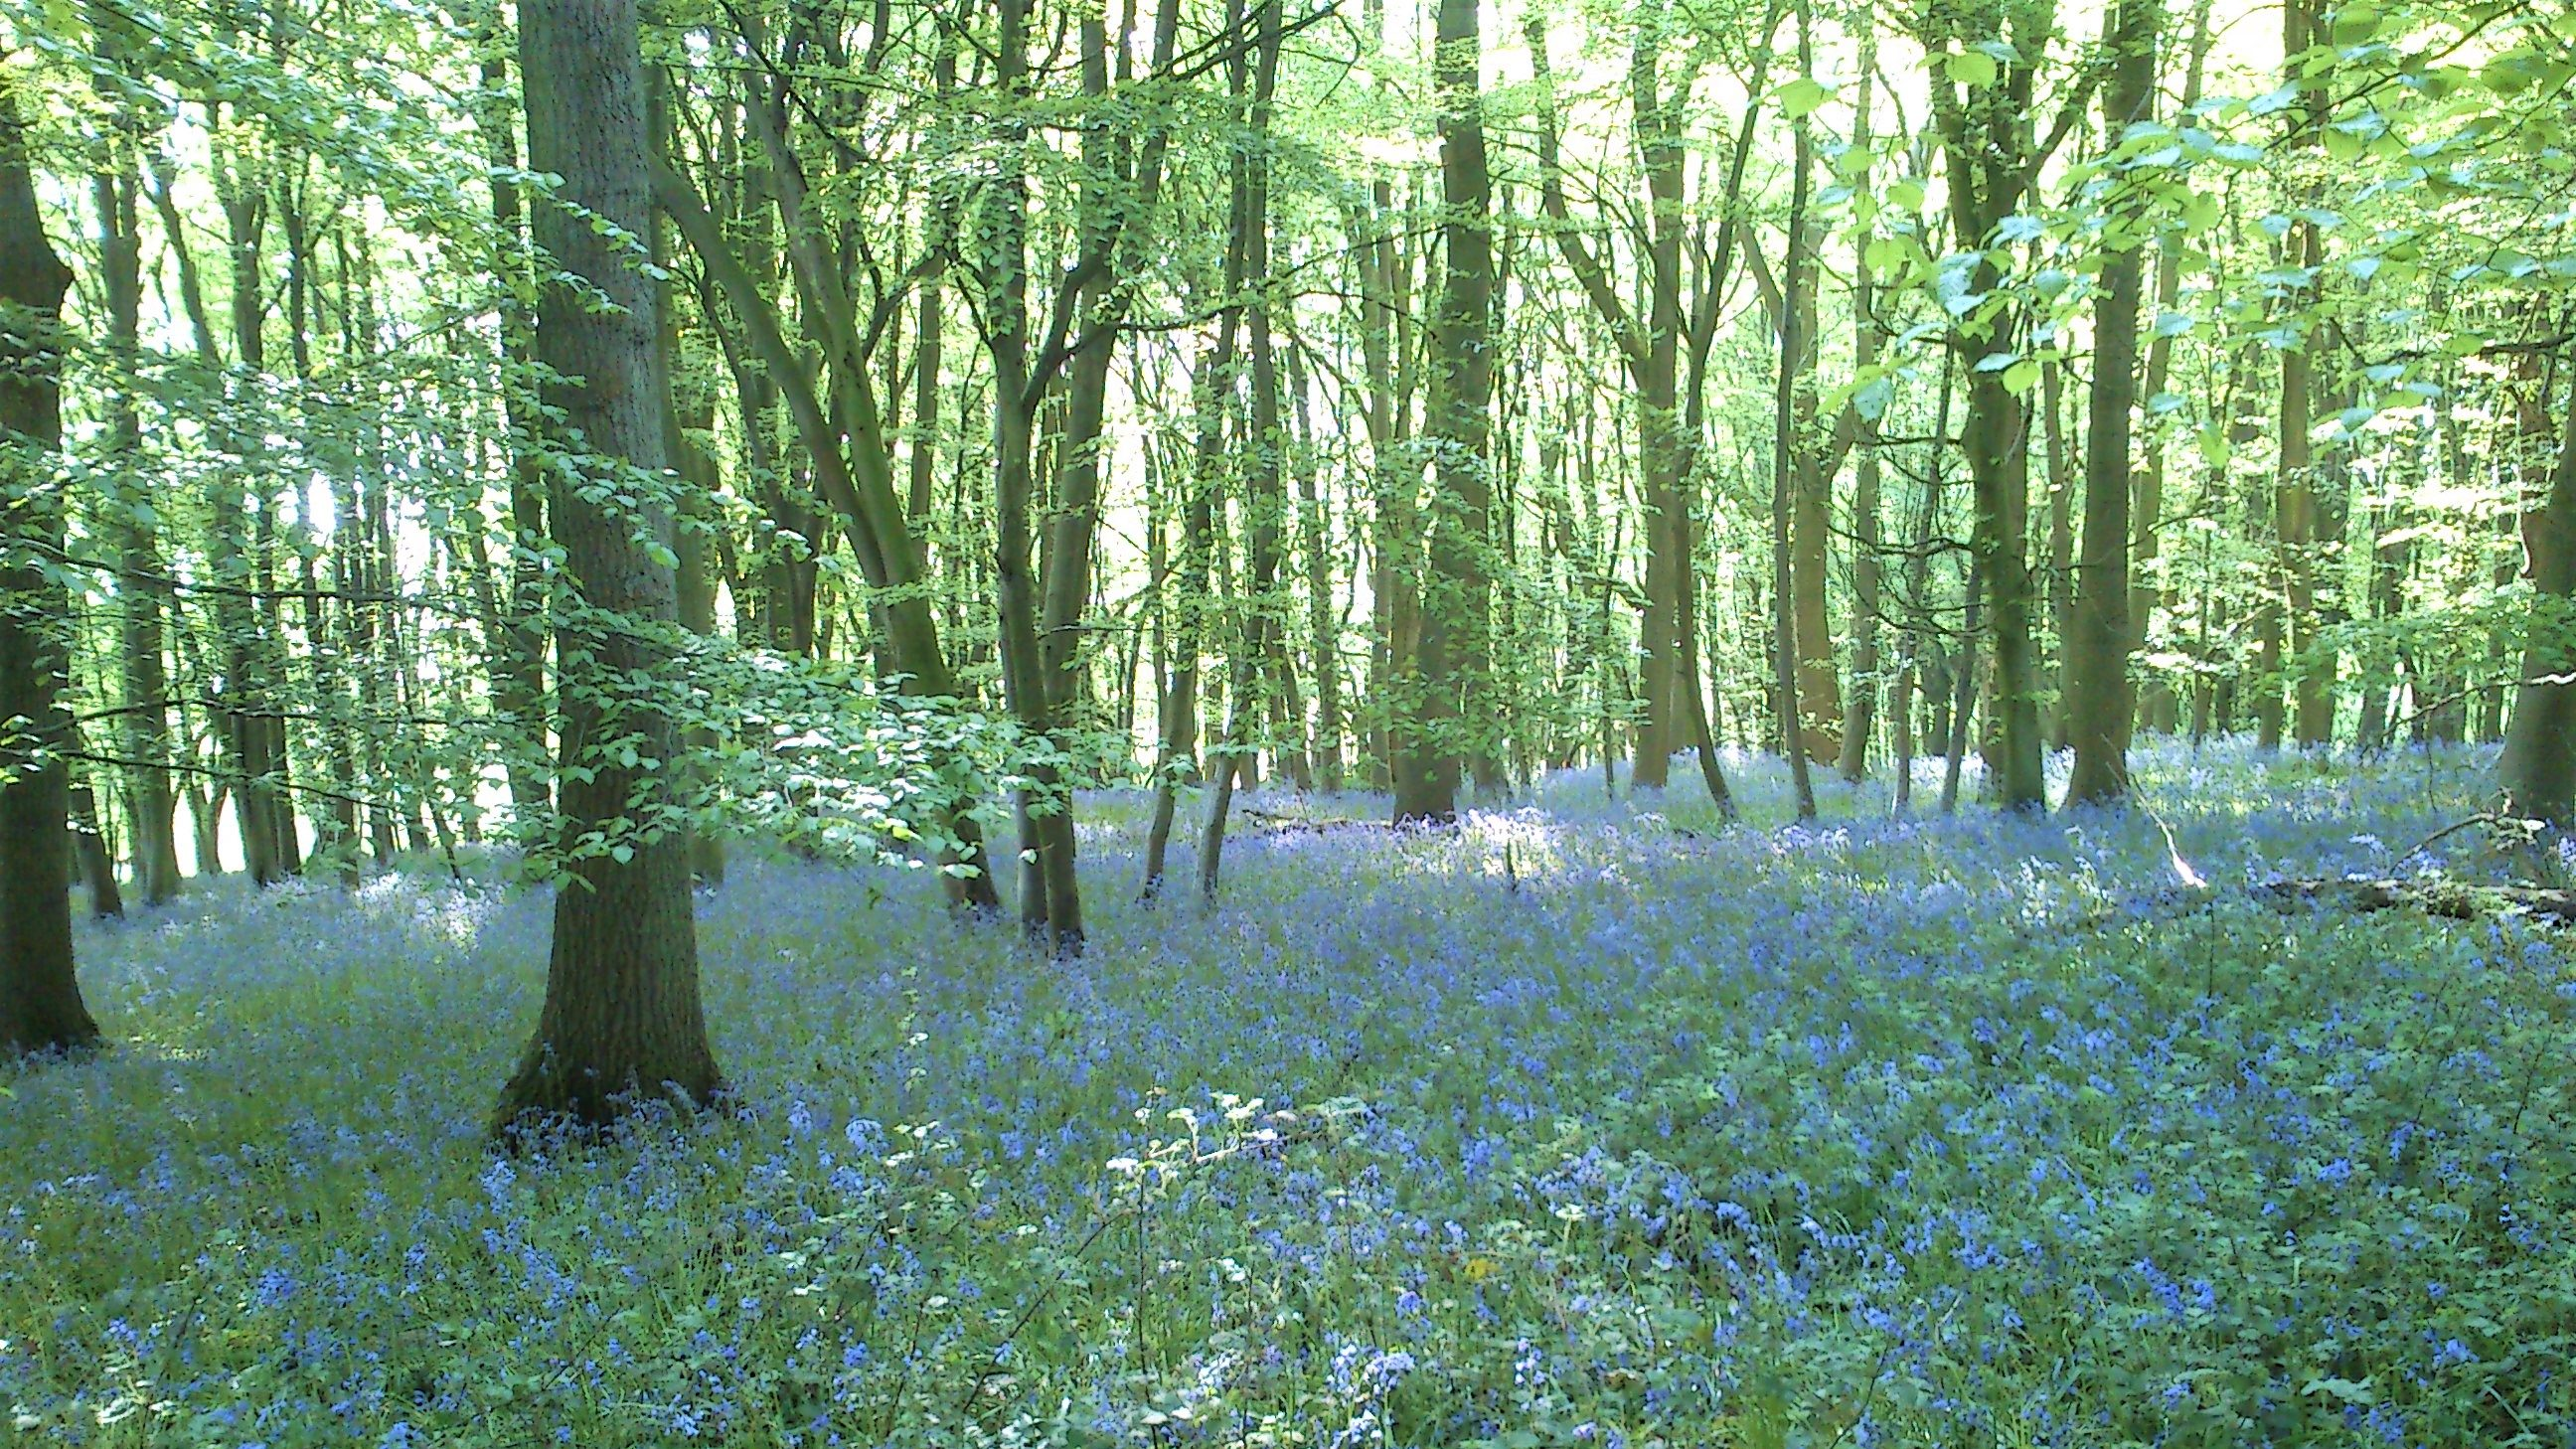 Image: Bluebell flowers in bloom in Wytham Woods